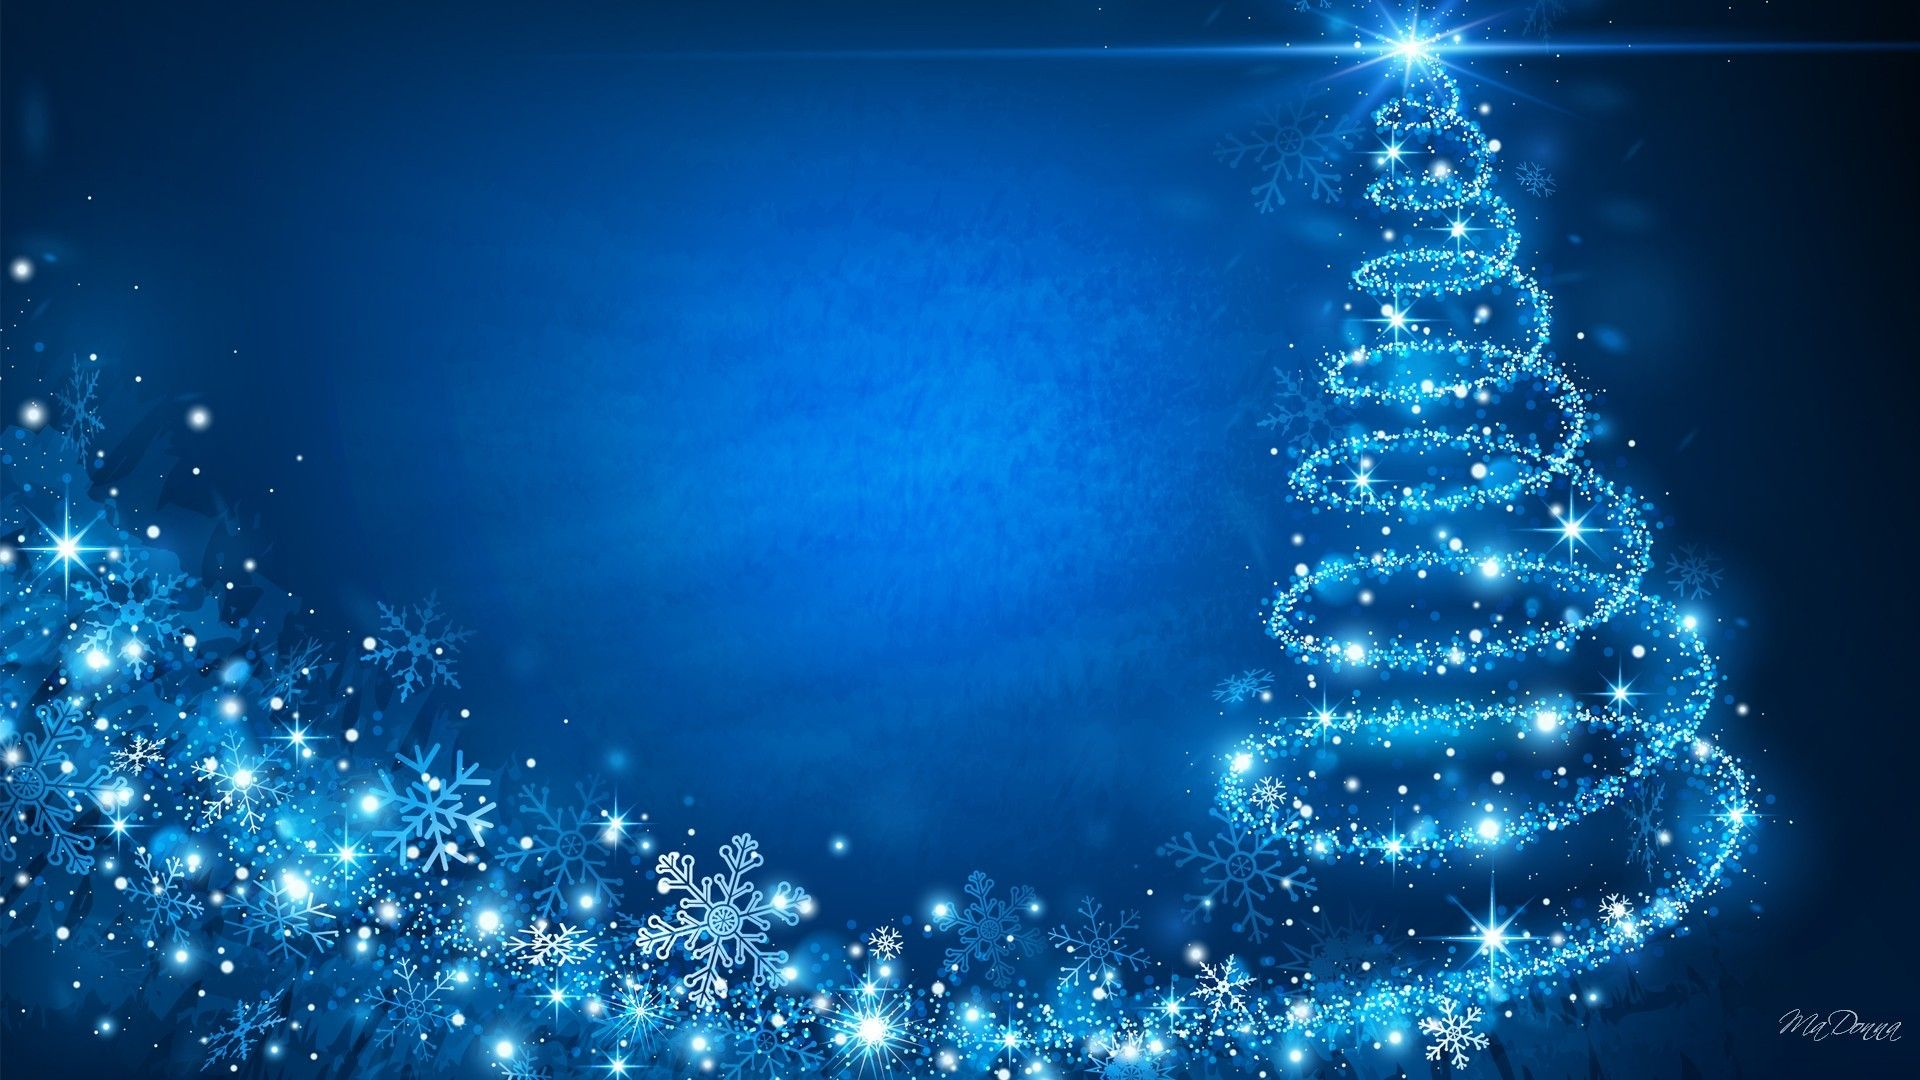 blue christmas wallpapers top free blue christmas backgrounds wallpaperaccess blue christmas wallpapers top free